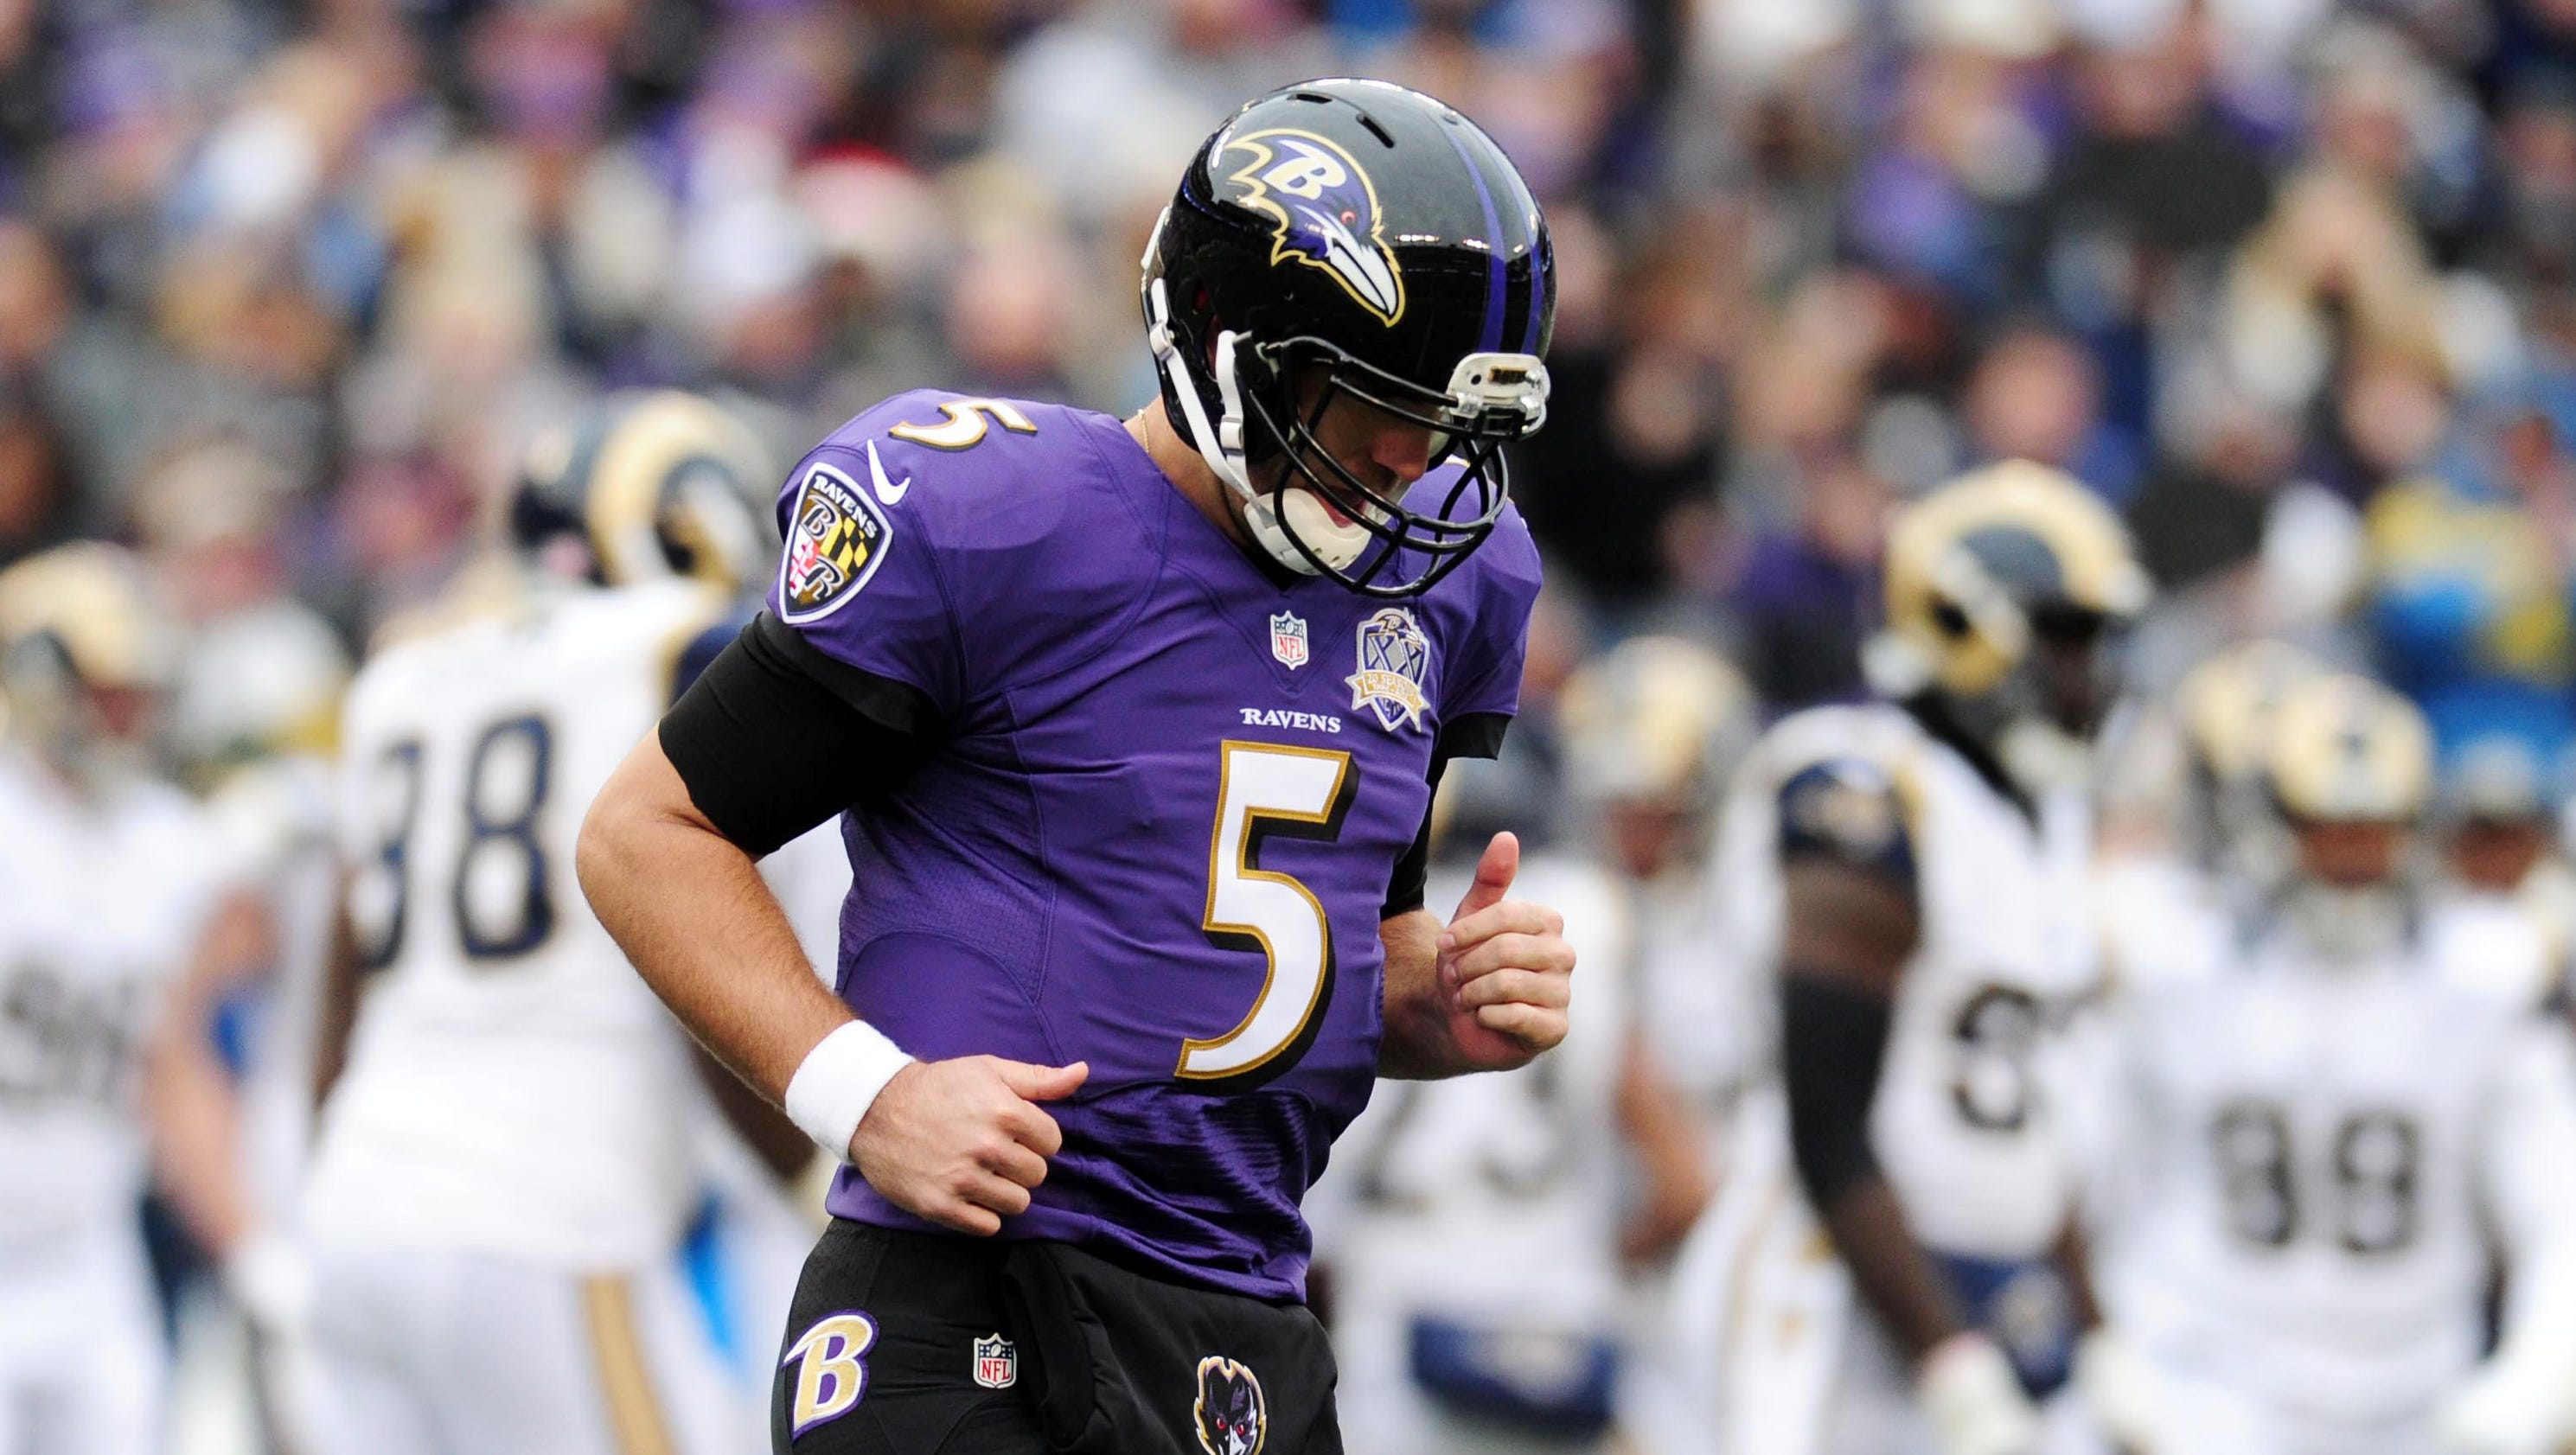 Ravens Qb Joe Flacco Finishes Win On Torn Acl But Out For